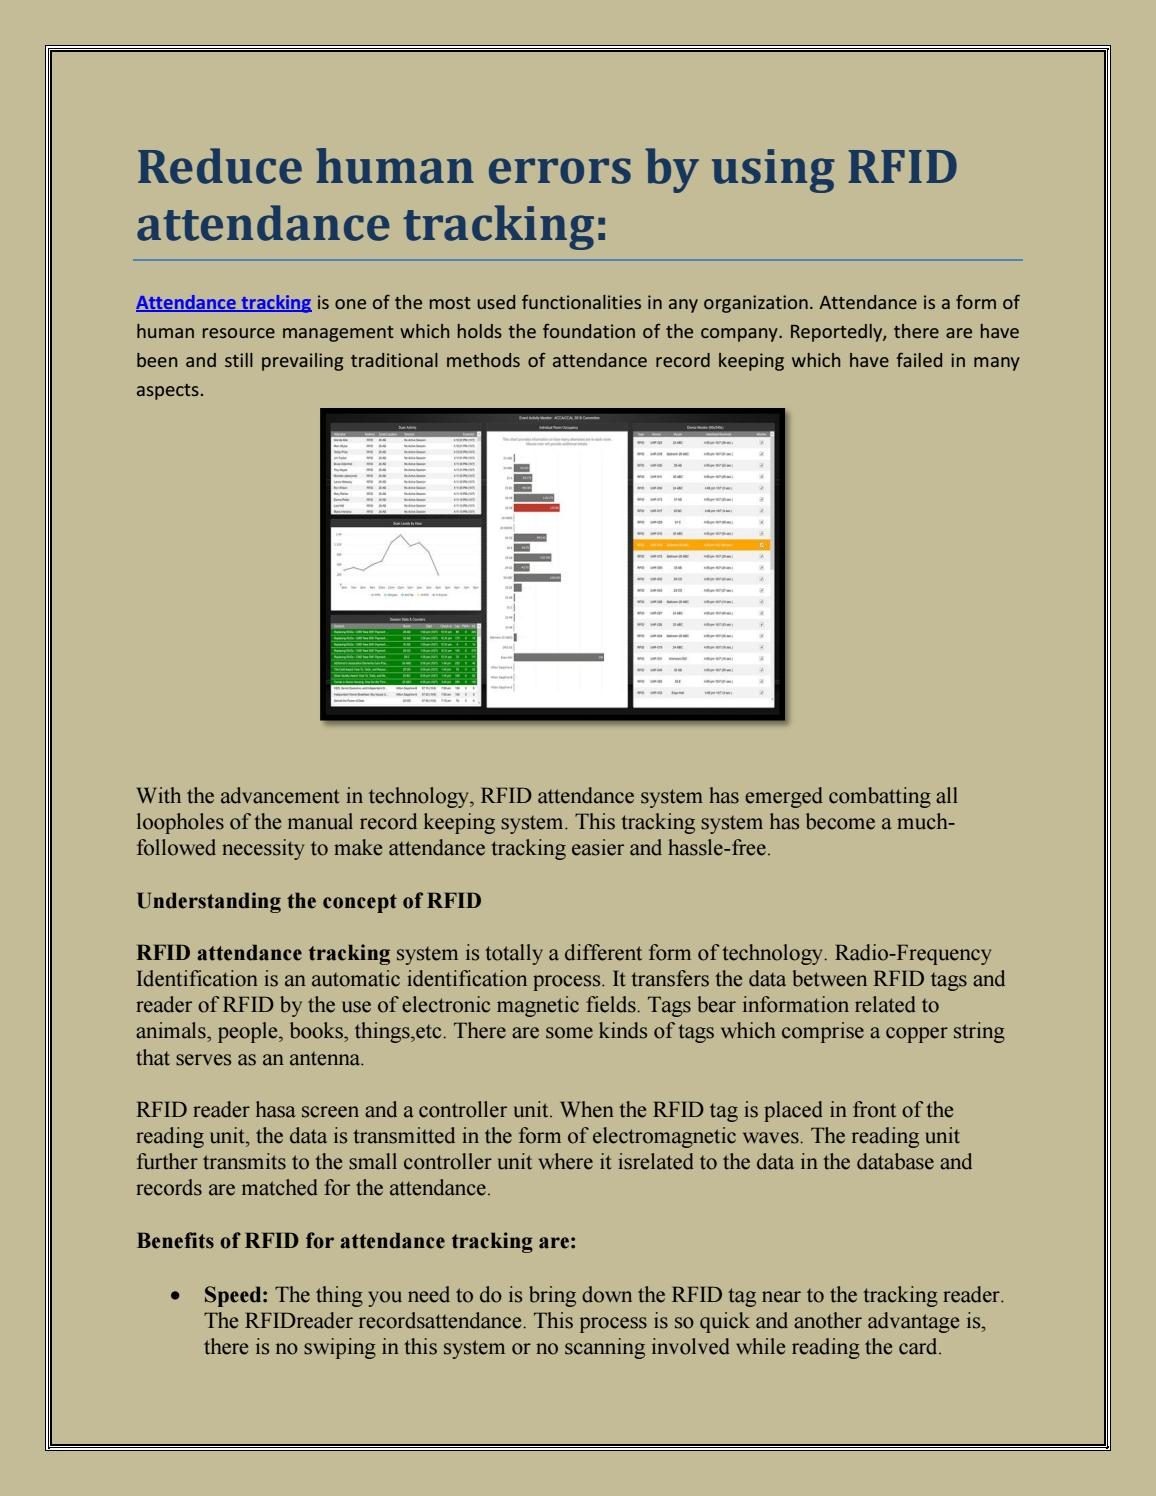 Reduce human errors by using RFID attendance tracking: by